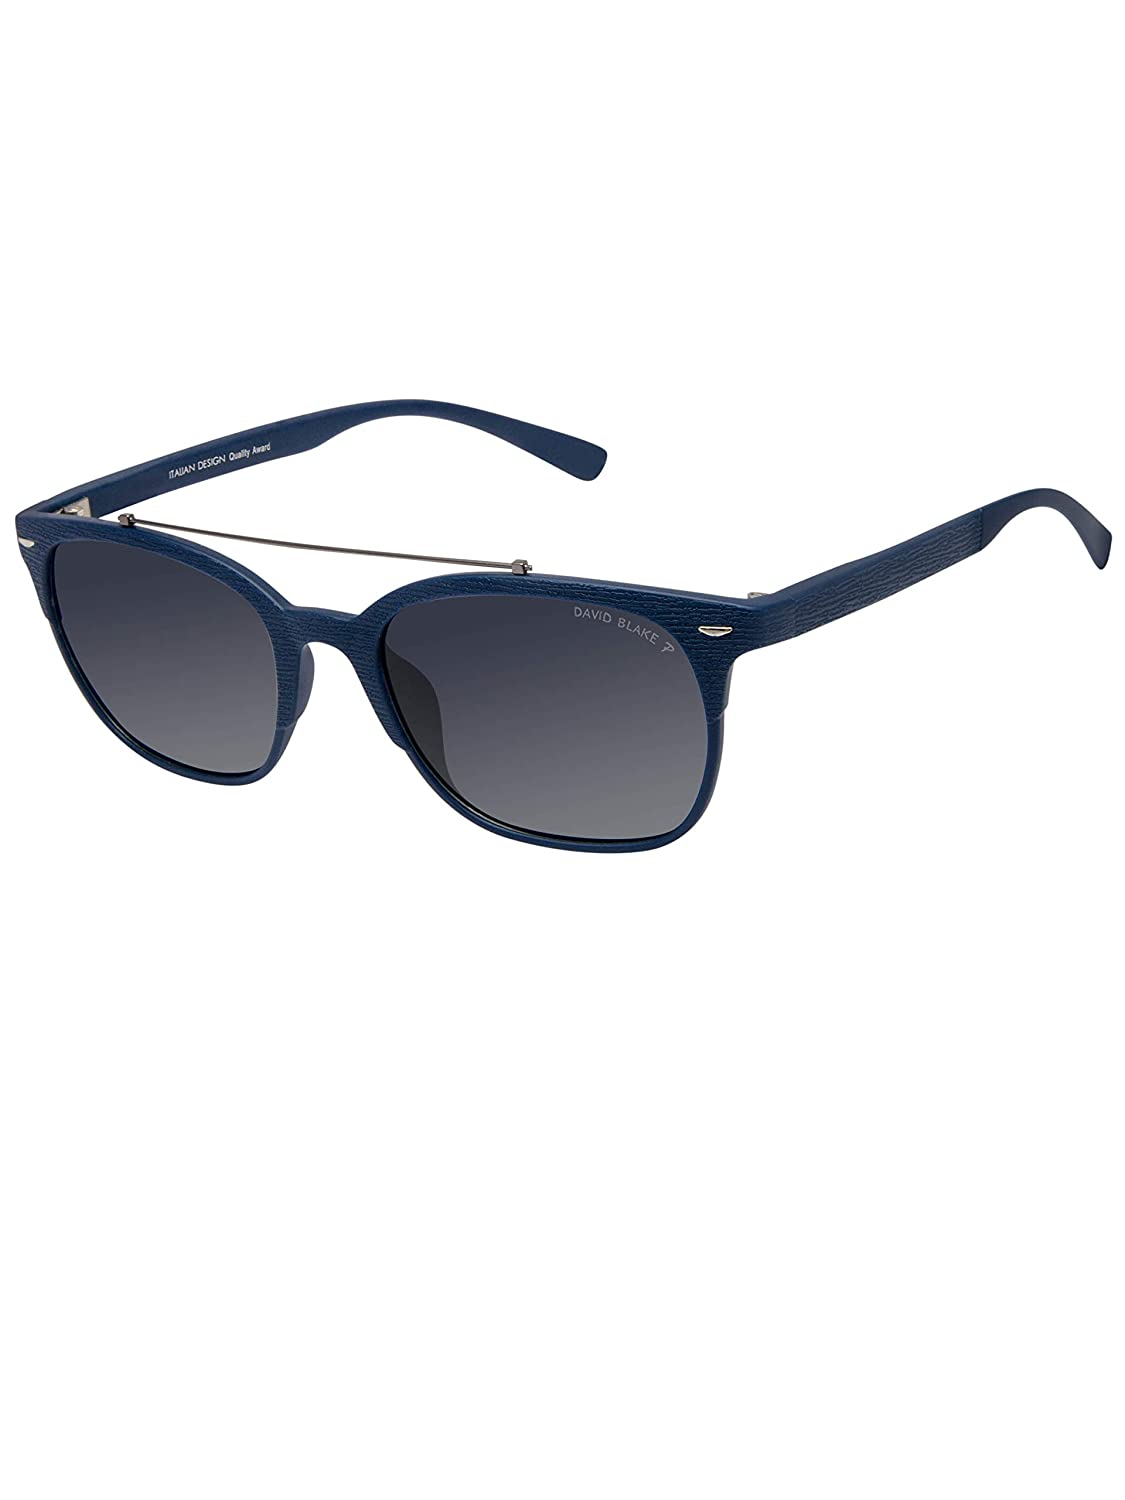 e0e69c9dec David Blake Blue Wayfarer Gradient Polarised UV Protected Sunglass -  SGDB1527xTR133C3